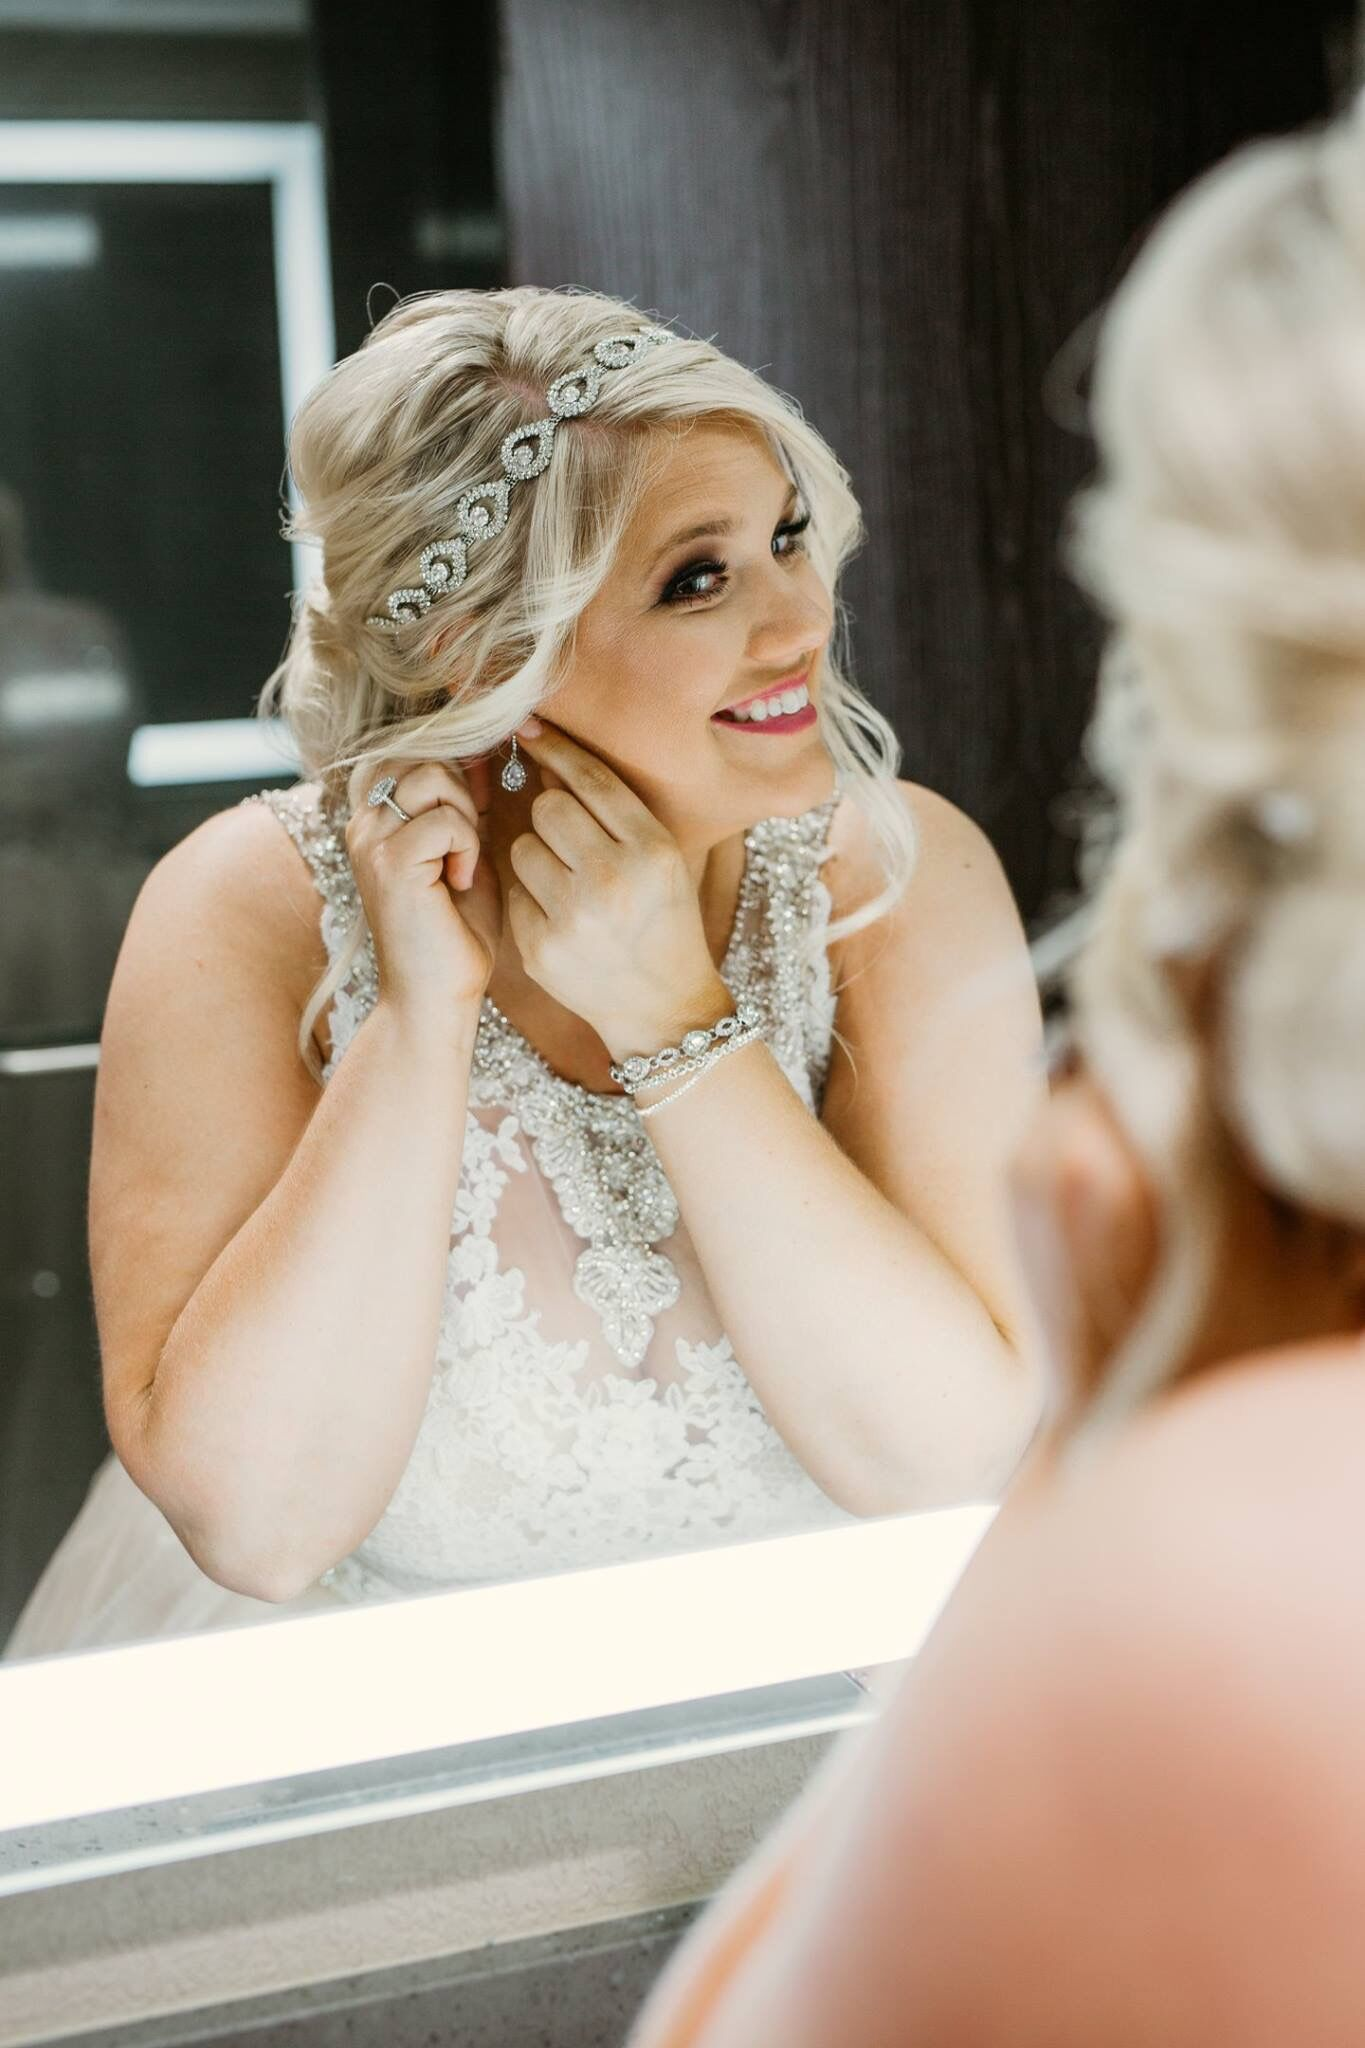 beauty salons in st. louis, mo - the knot